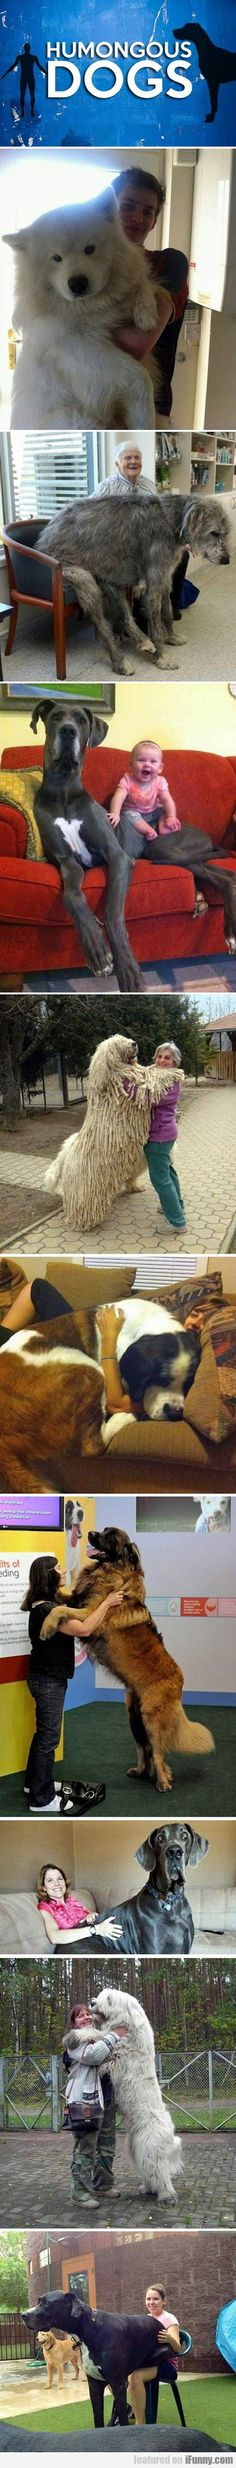 Humongous Dogs - http://www.funnyclone.com/humongous-dogs/